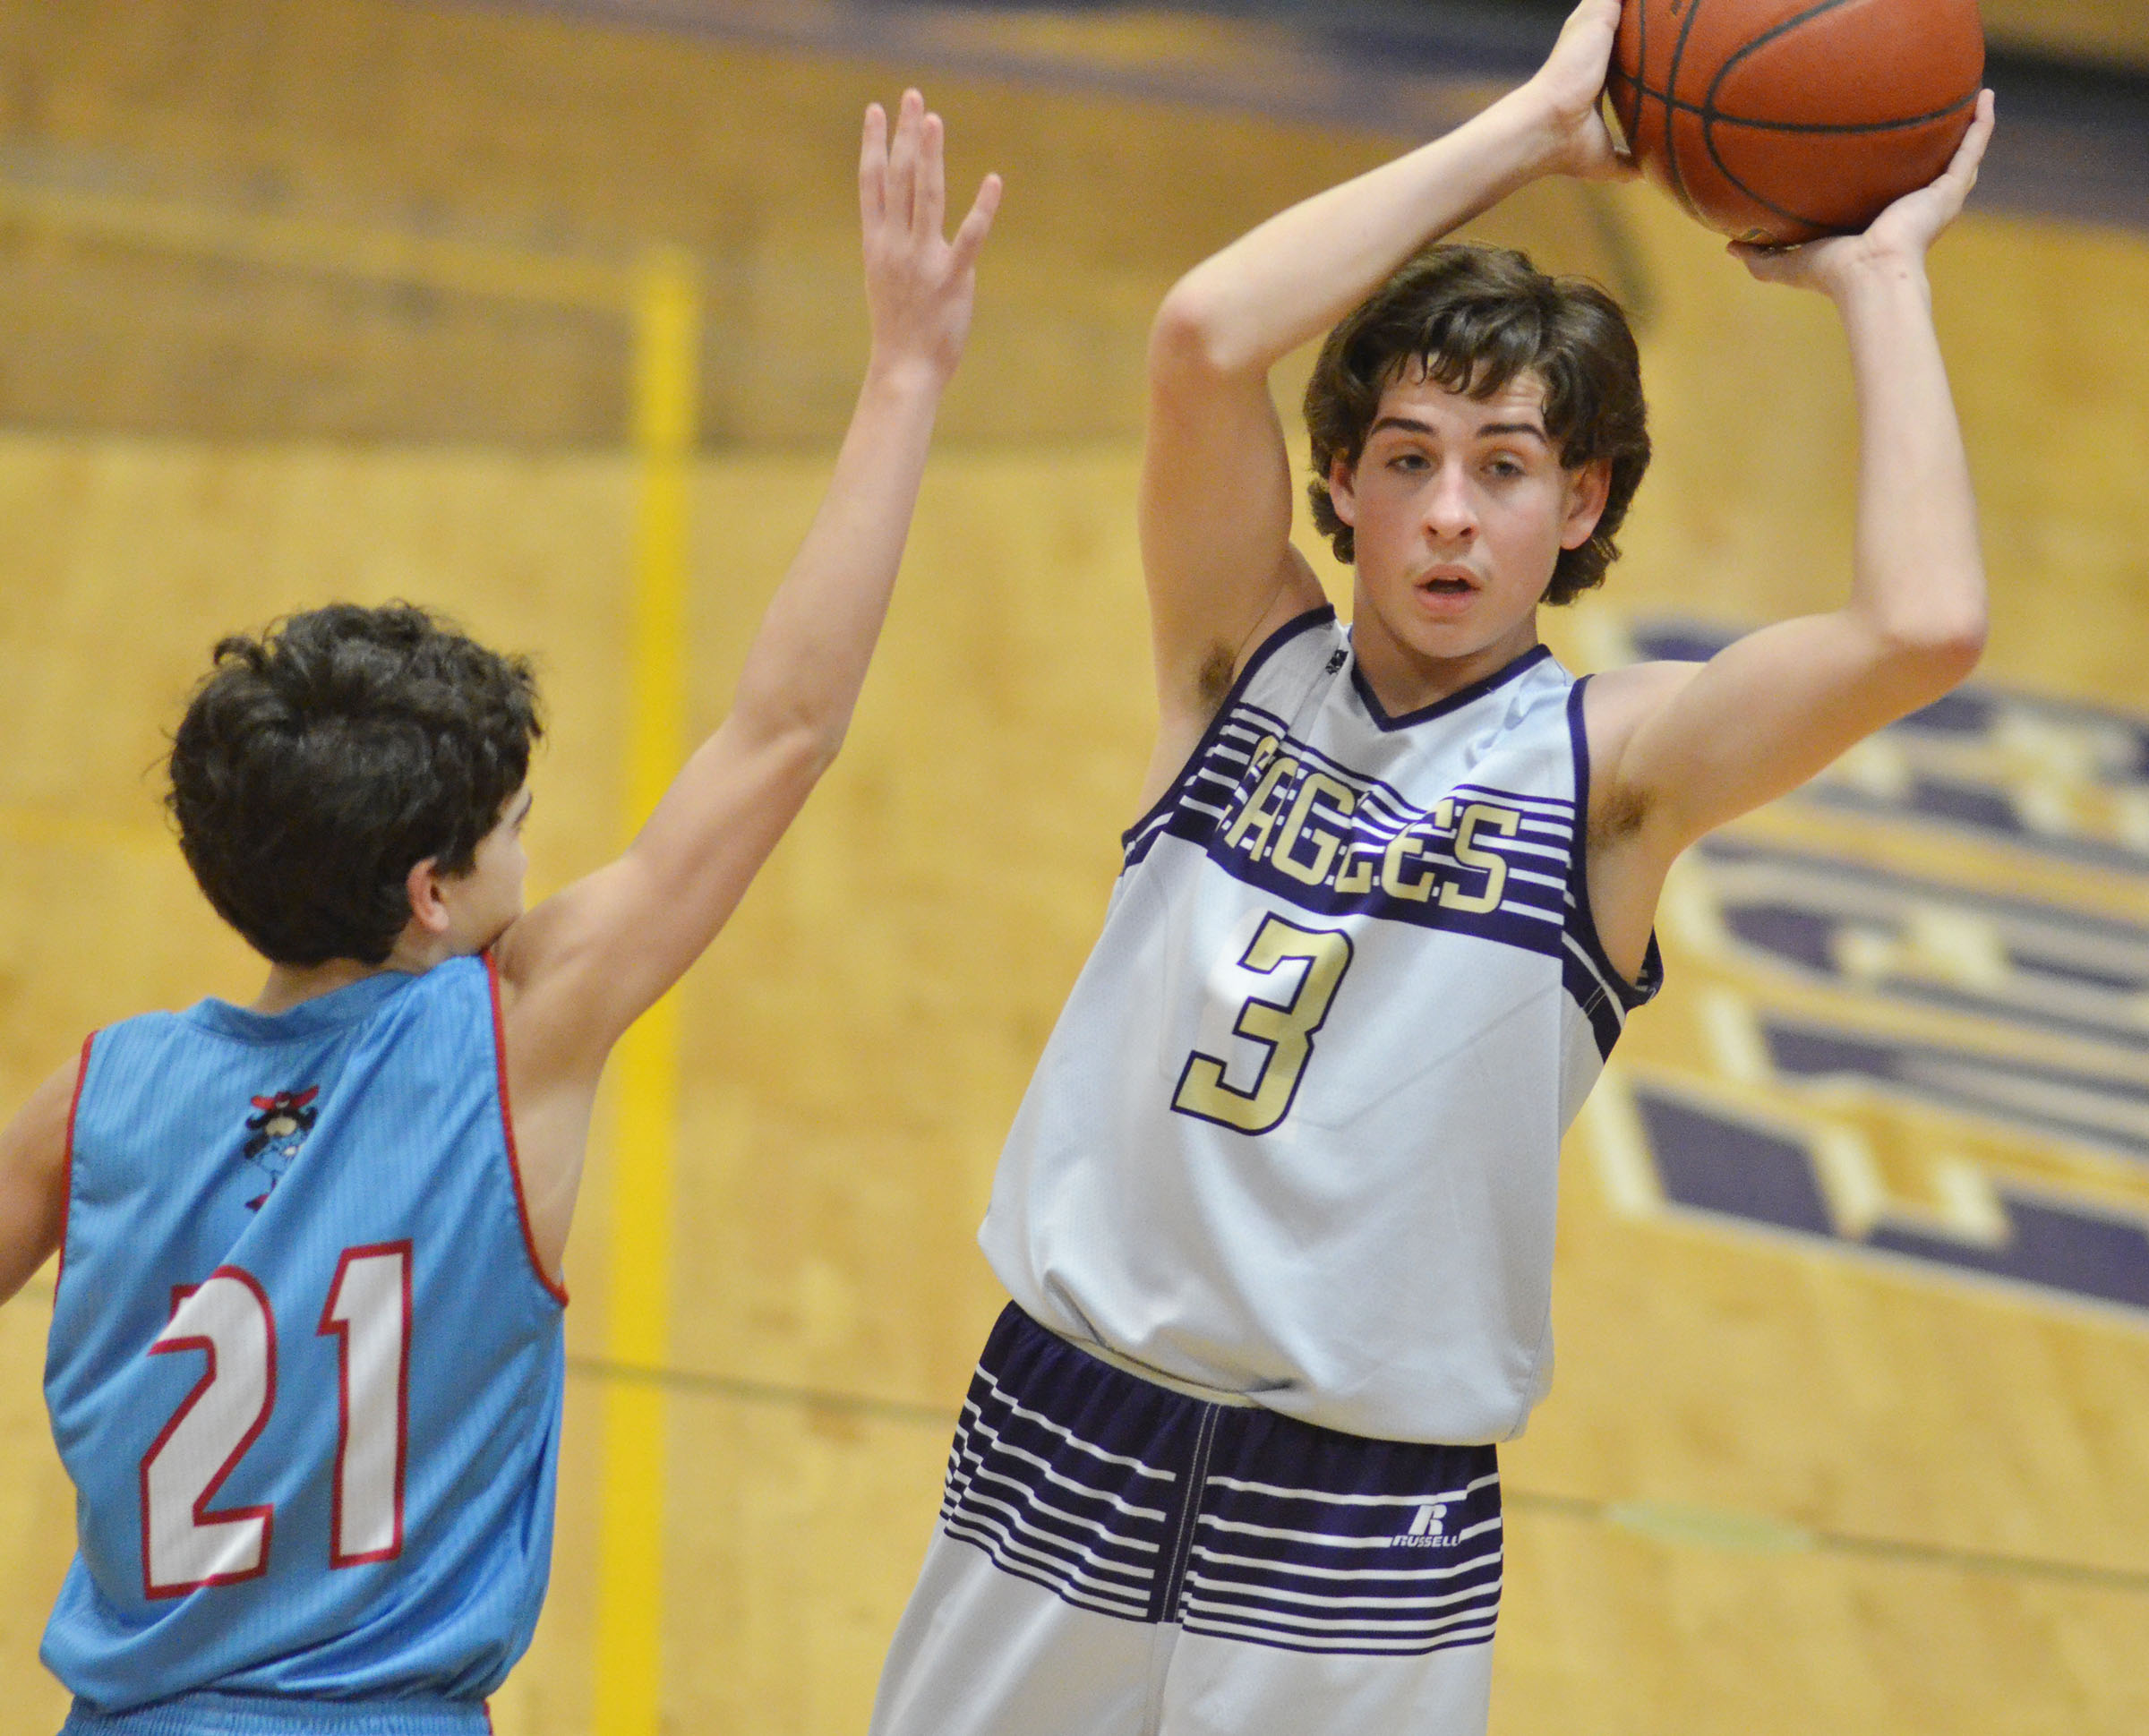 CMS eighth-grader John Orberson passes the ball.